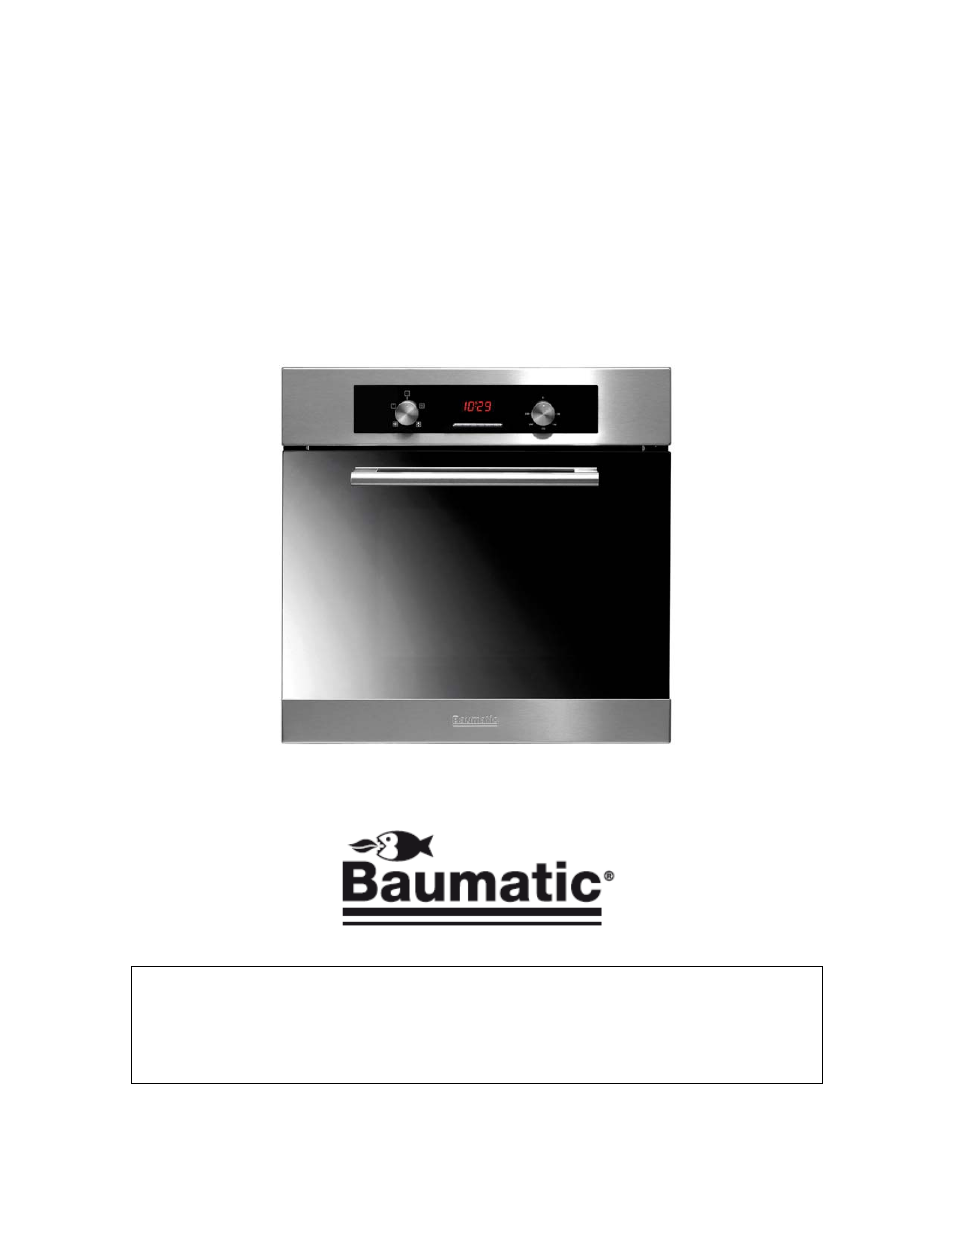 background image. User Manual for your Baumatic